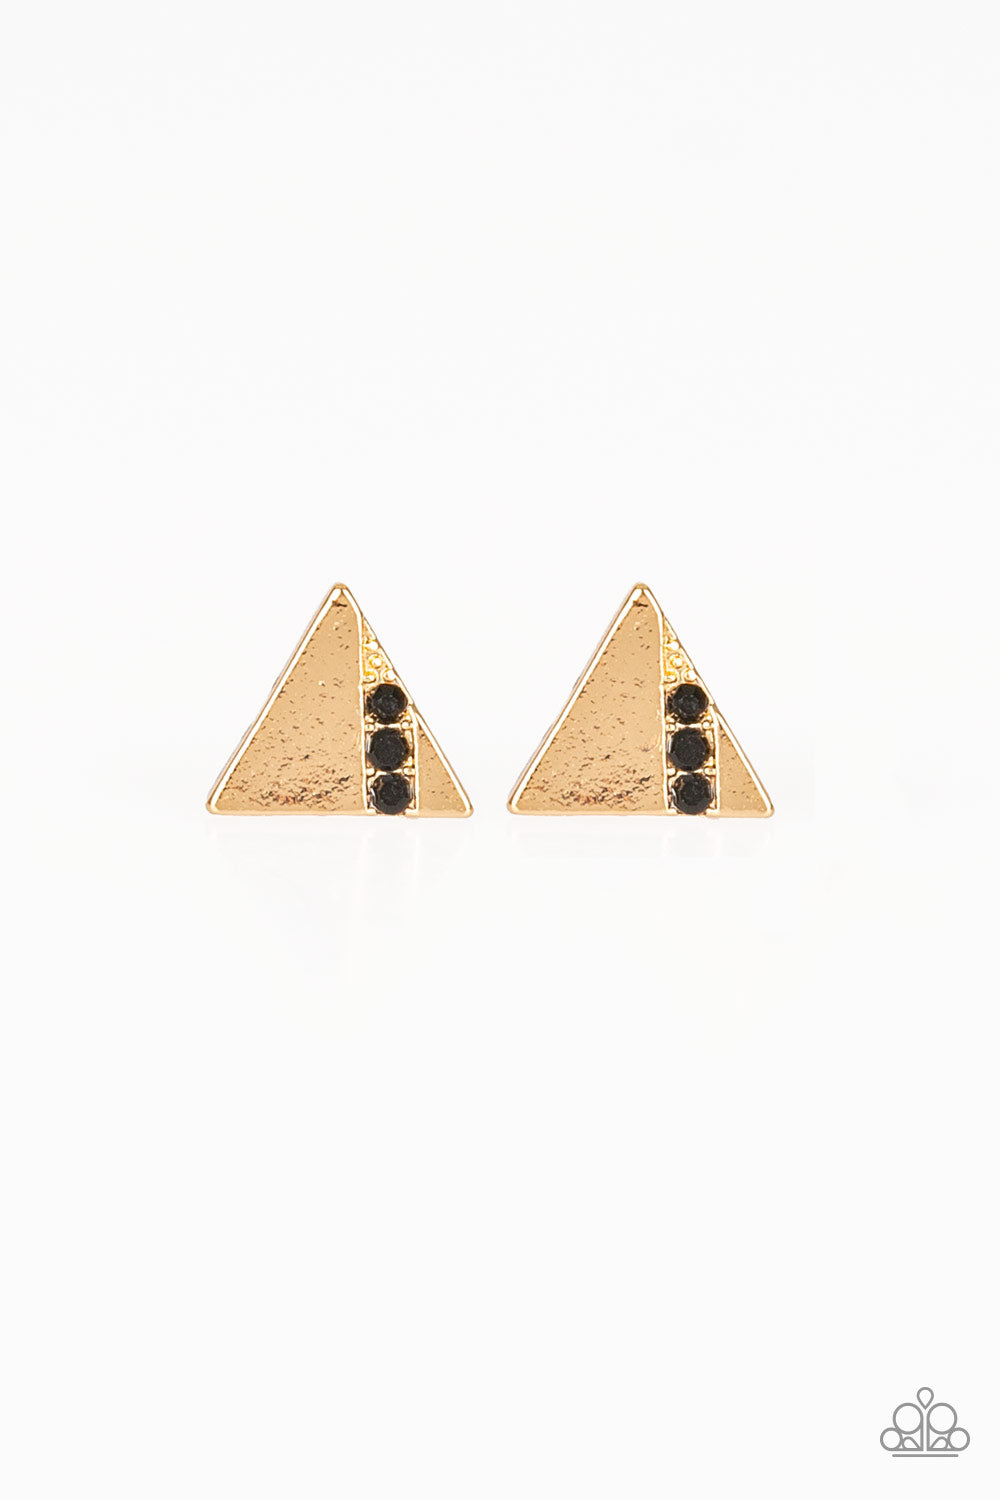 Pyramid Paradise - Black Earrings - SavvyChicksJewelry